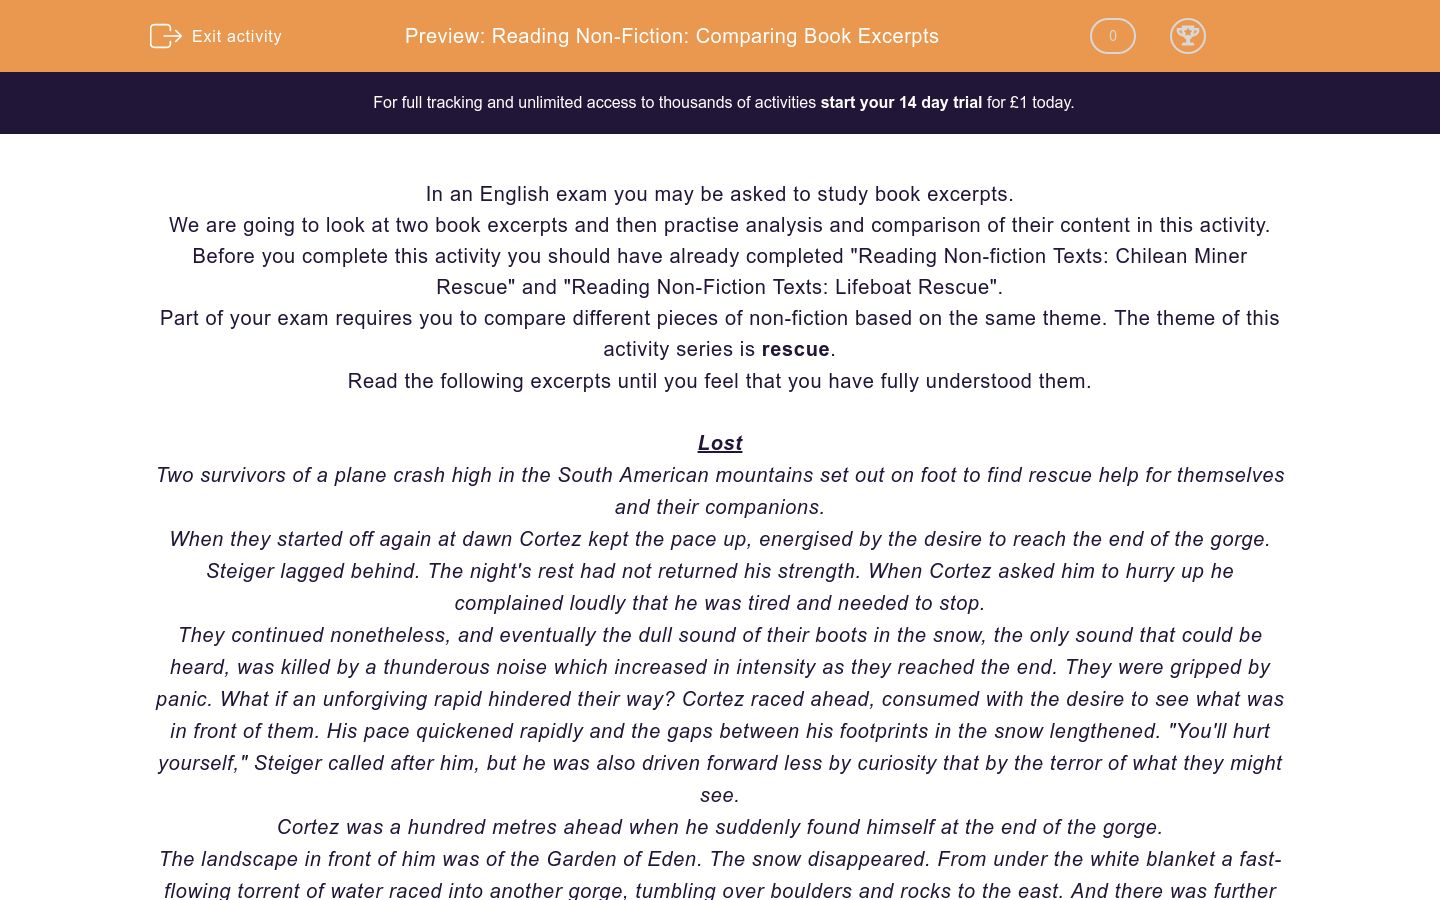 'Reading Non-Fiction: Comparing Book Excerpts' worksheet